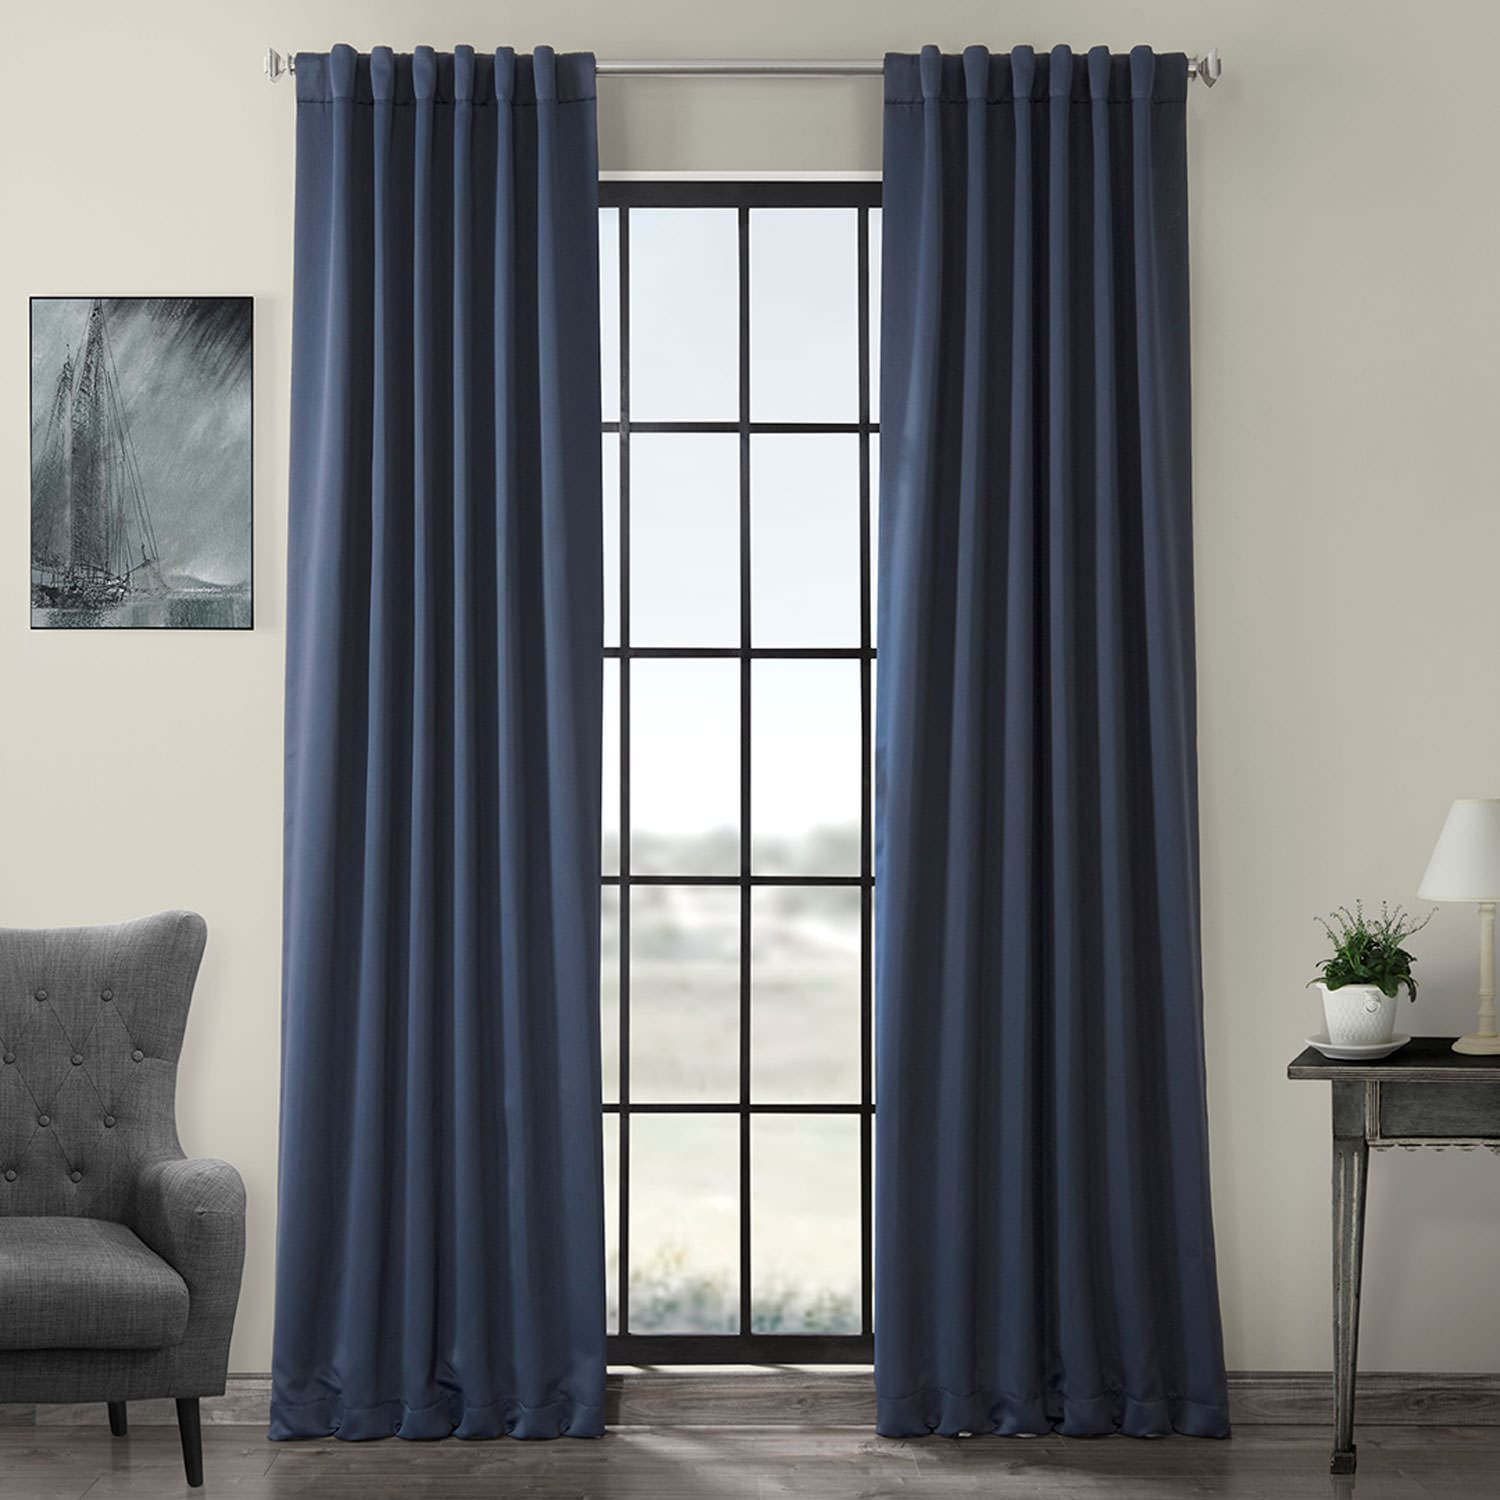 Curtains For A Blue Room Nocturne Blue Room Darkening Curtain